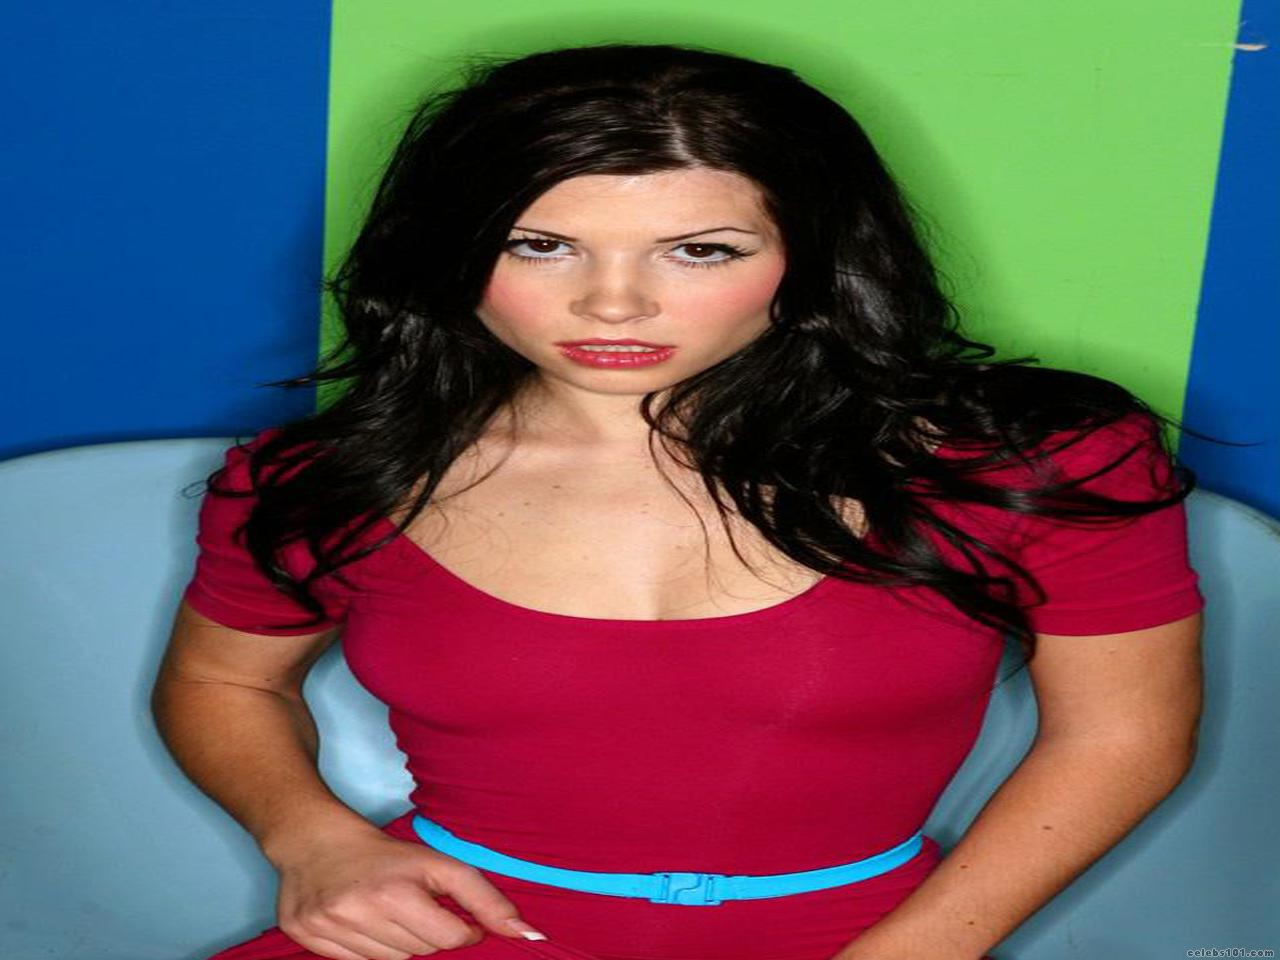 Rebecca Linares High quality wallpaper size 1280x960 of